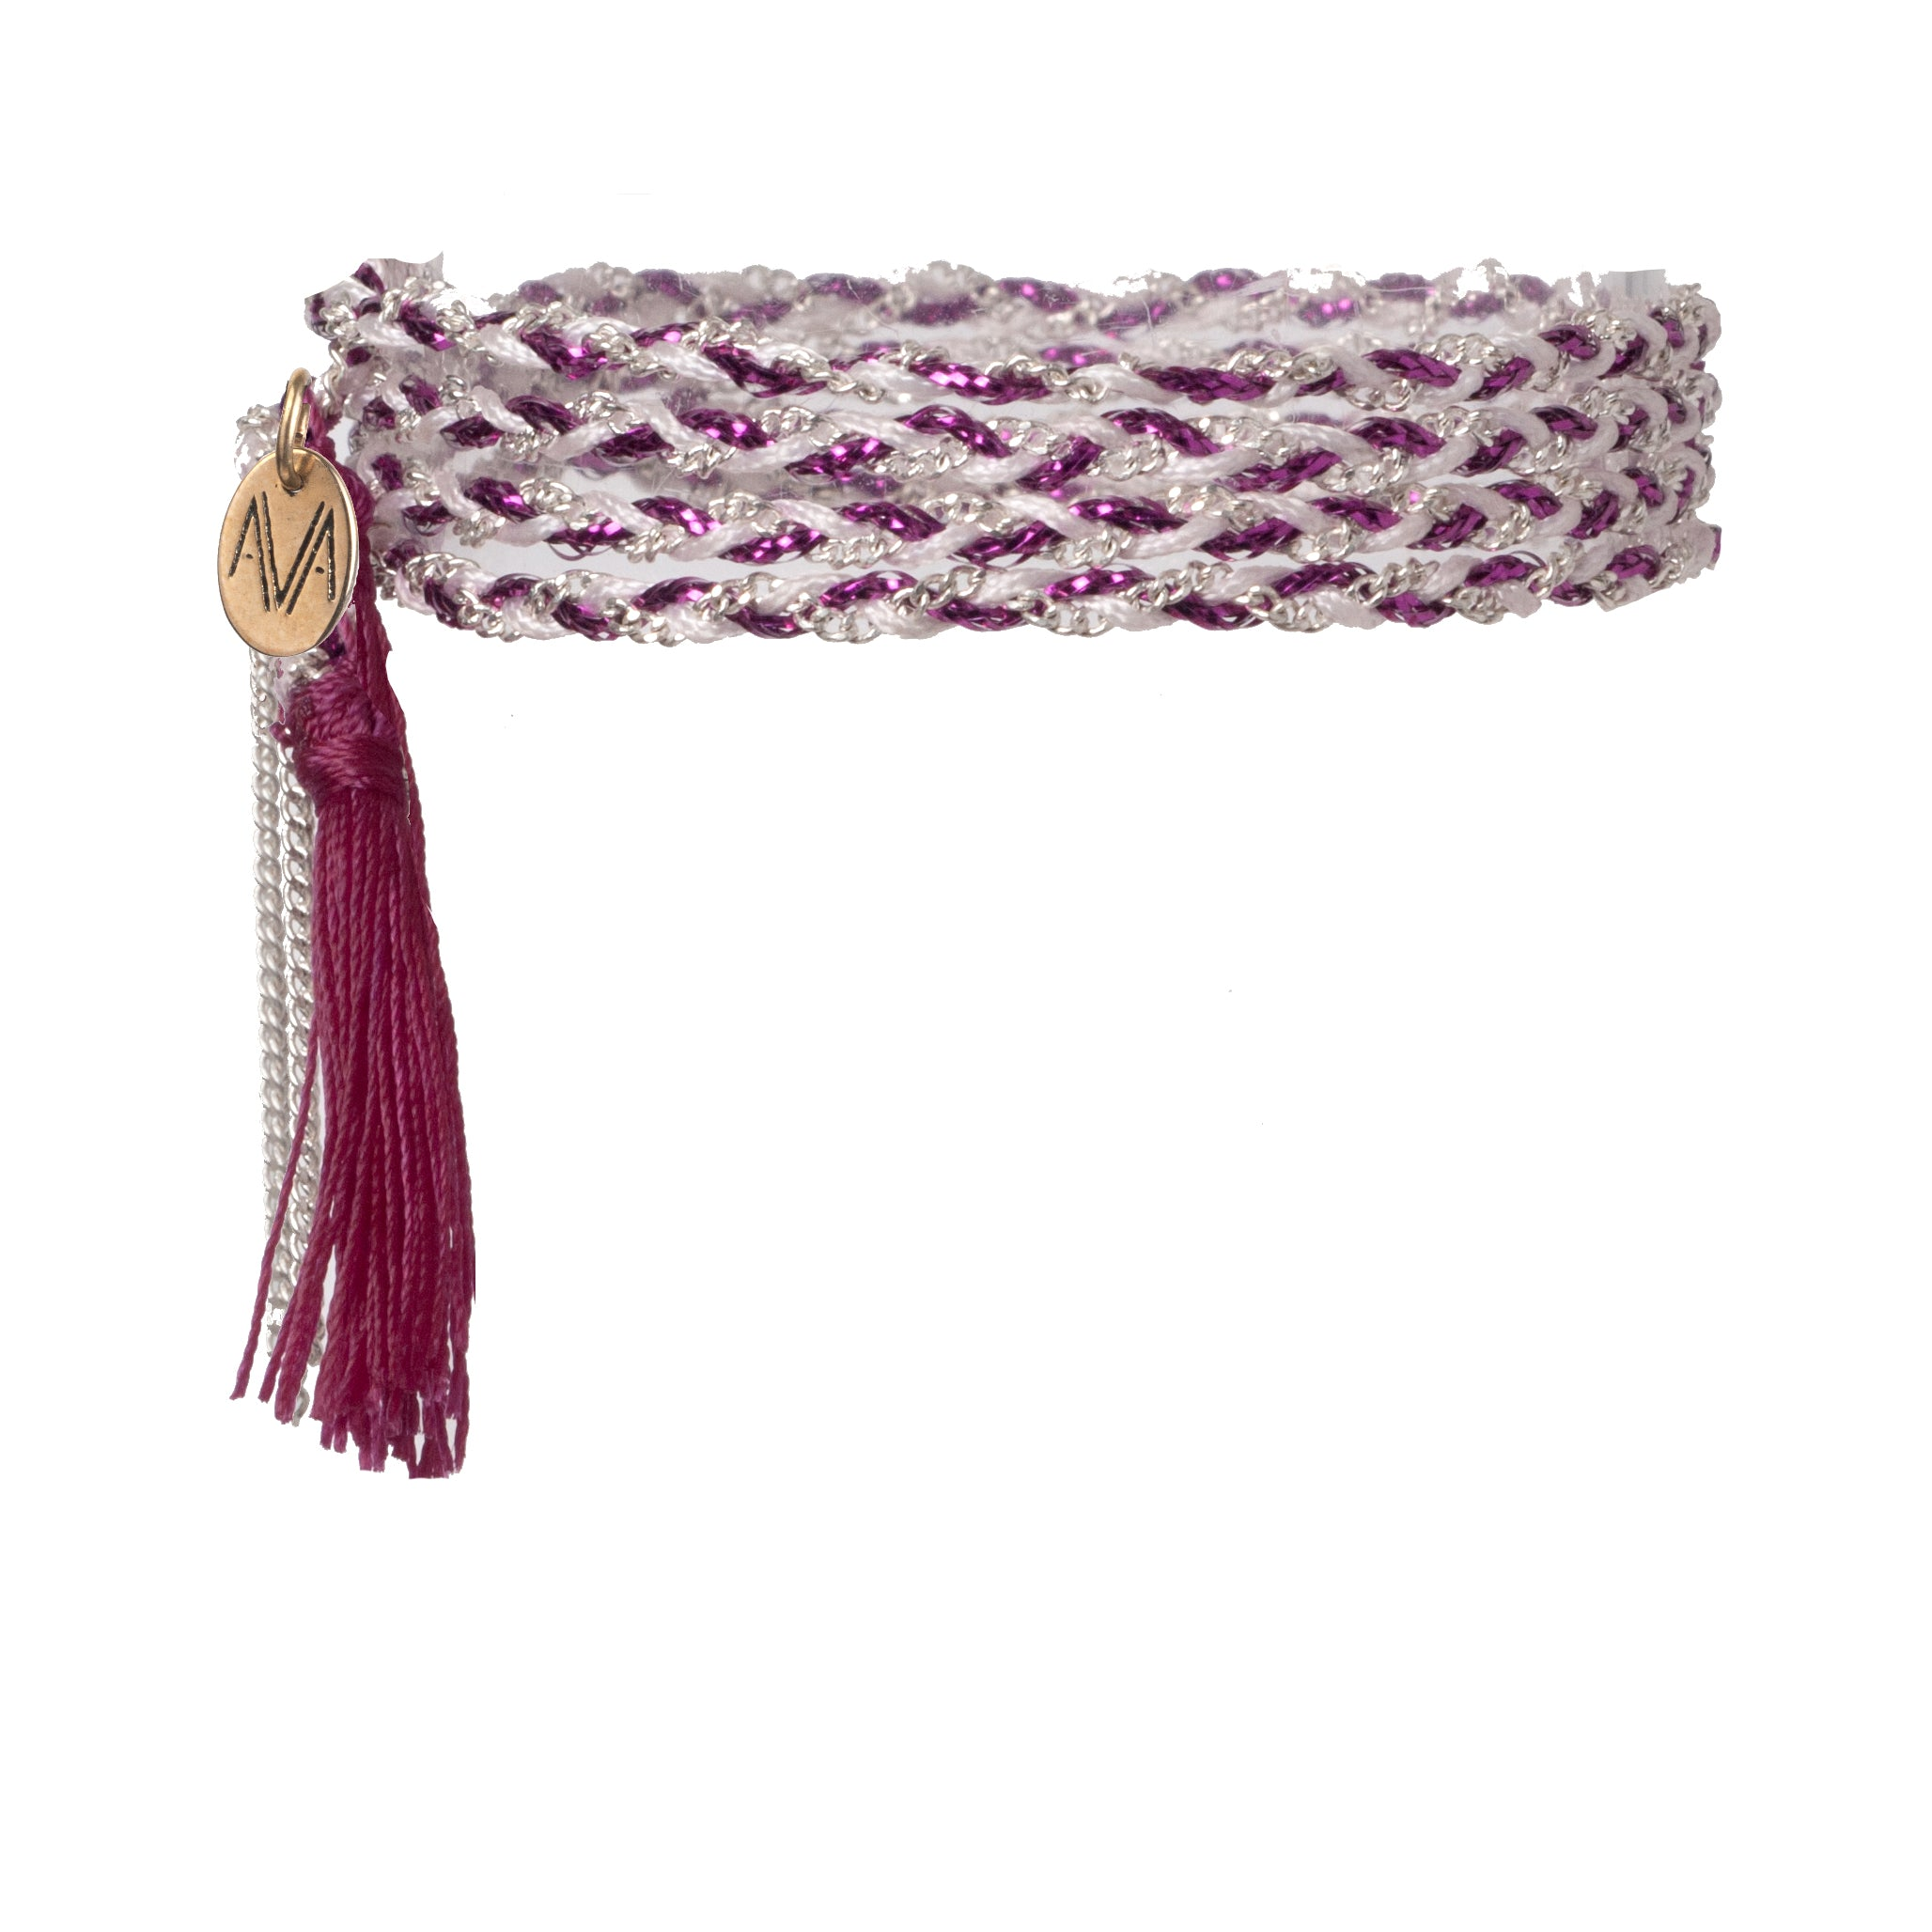 wrap bracelet made of Nylon, Lurex, nickel free chain, completed by a lilac tassel